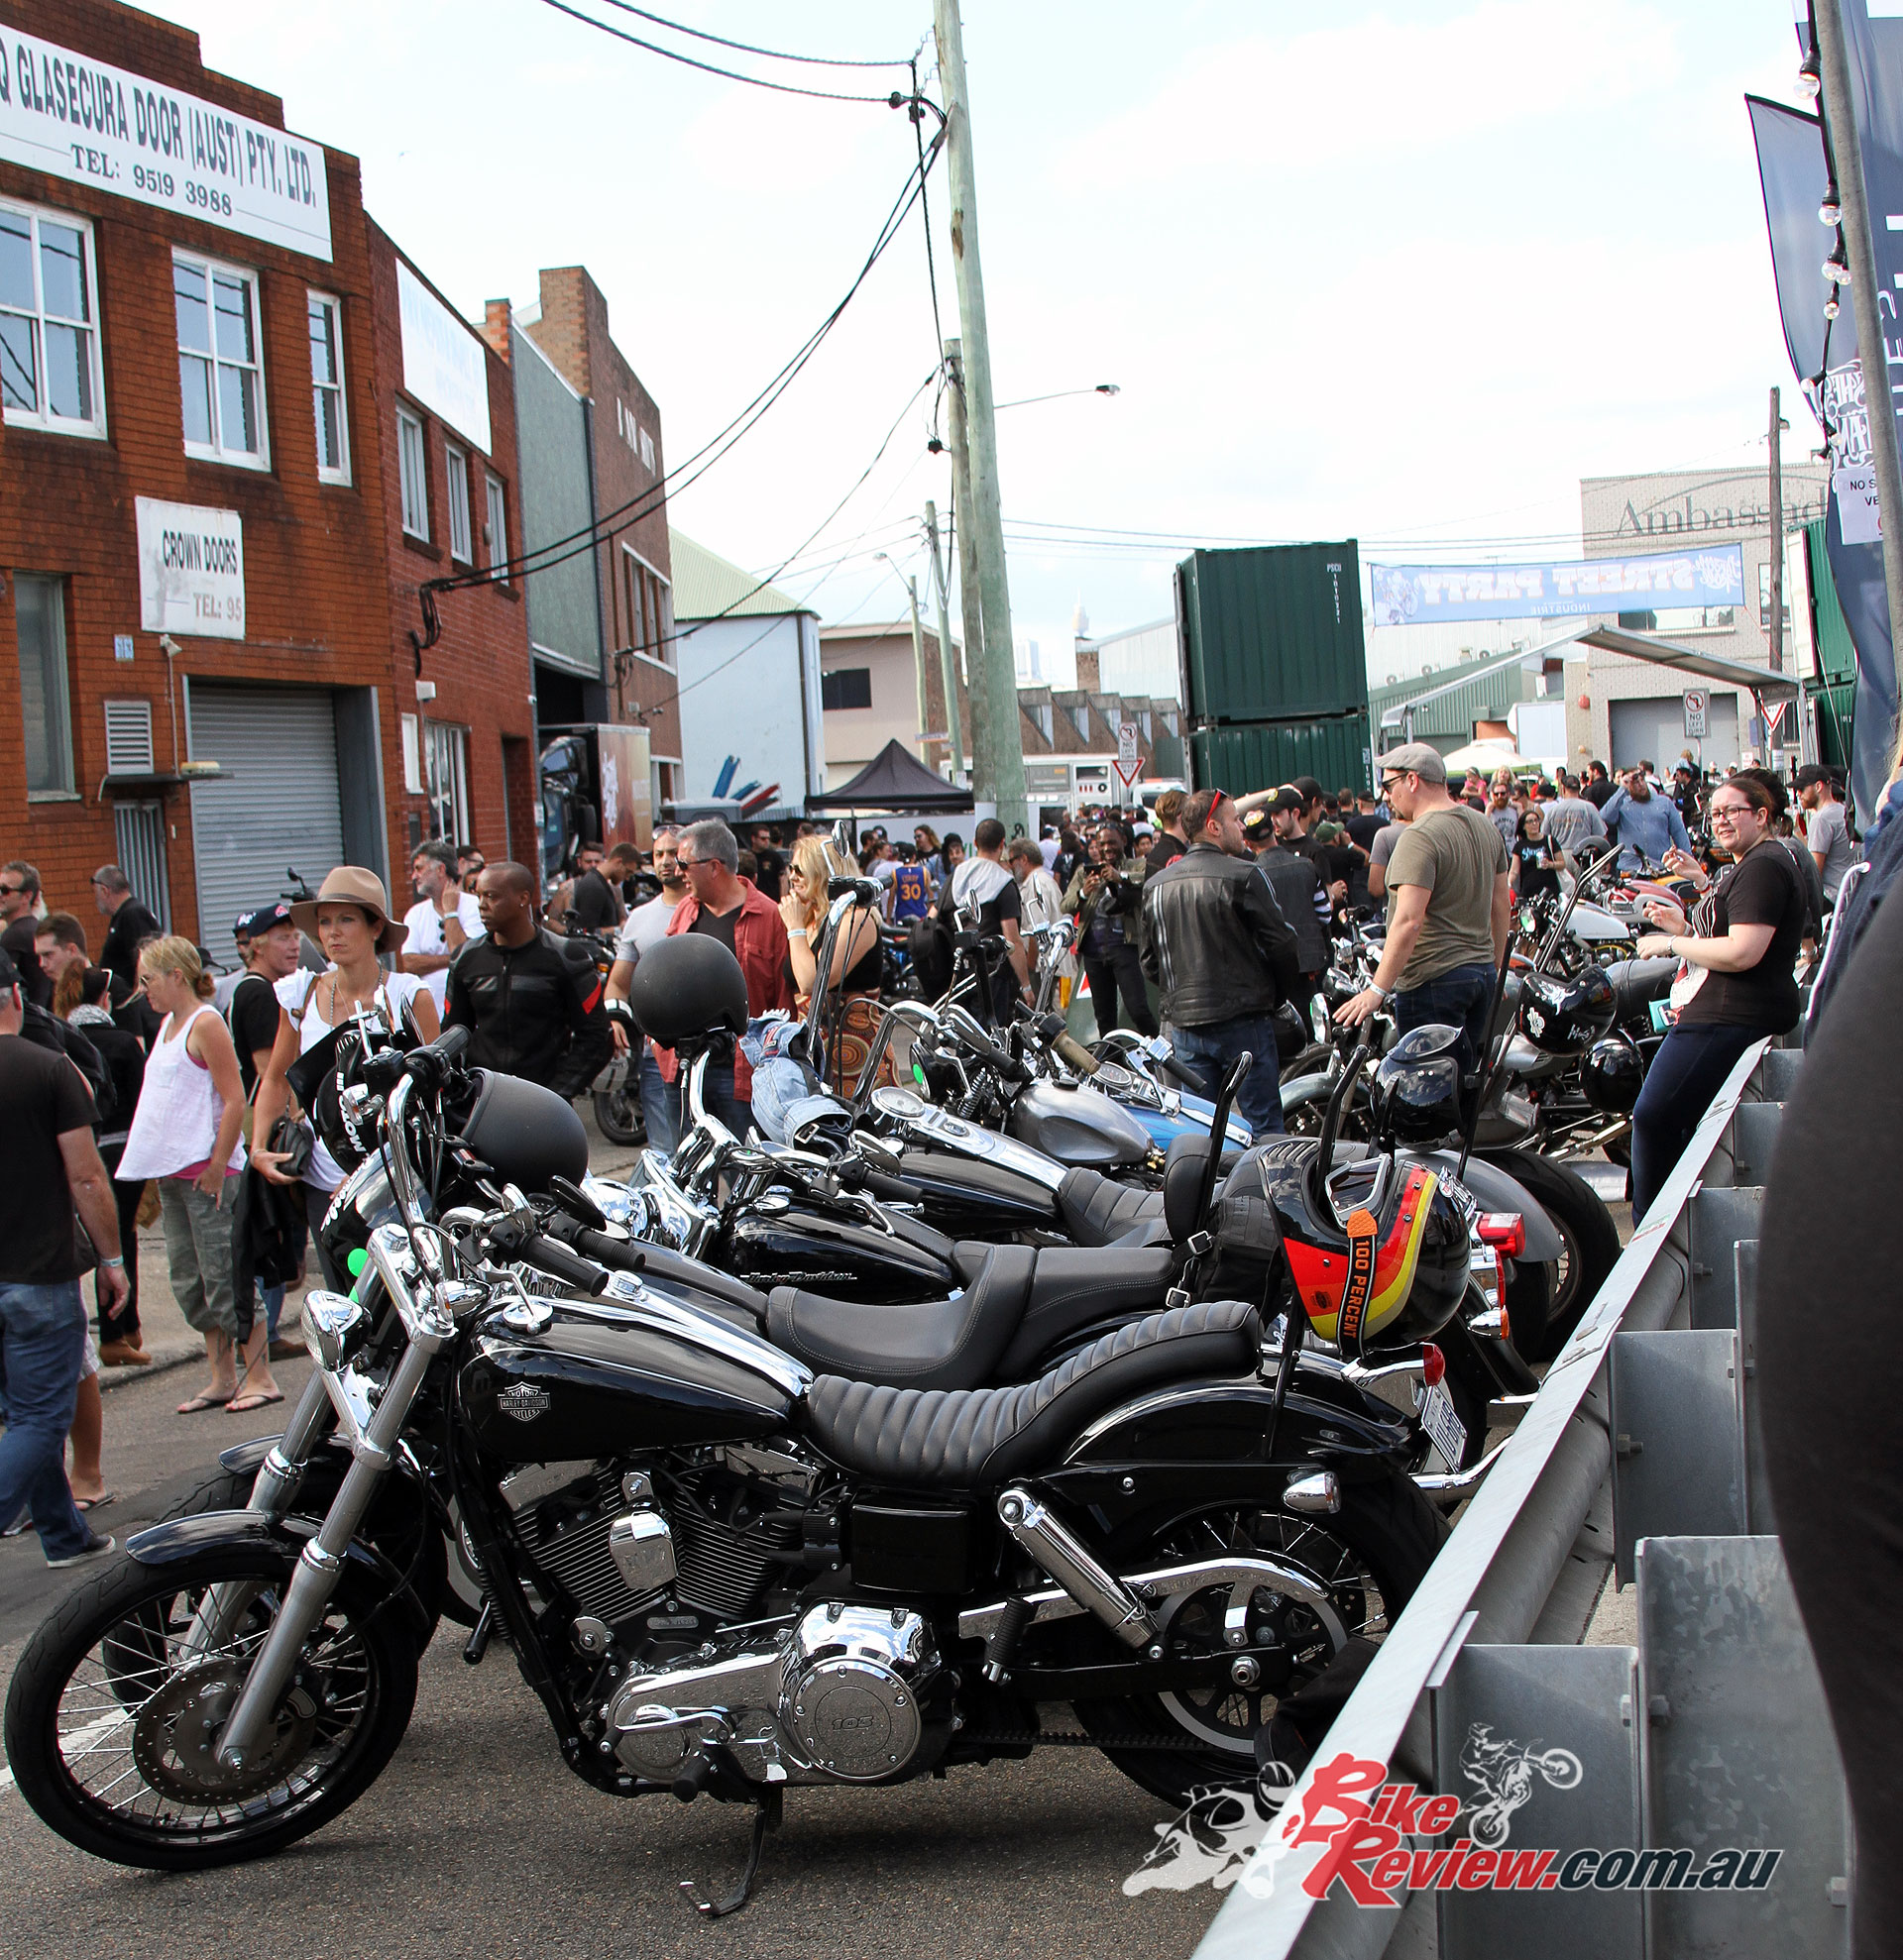 2017 Throttle Roll - There was plenty of people coming through the gates